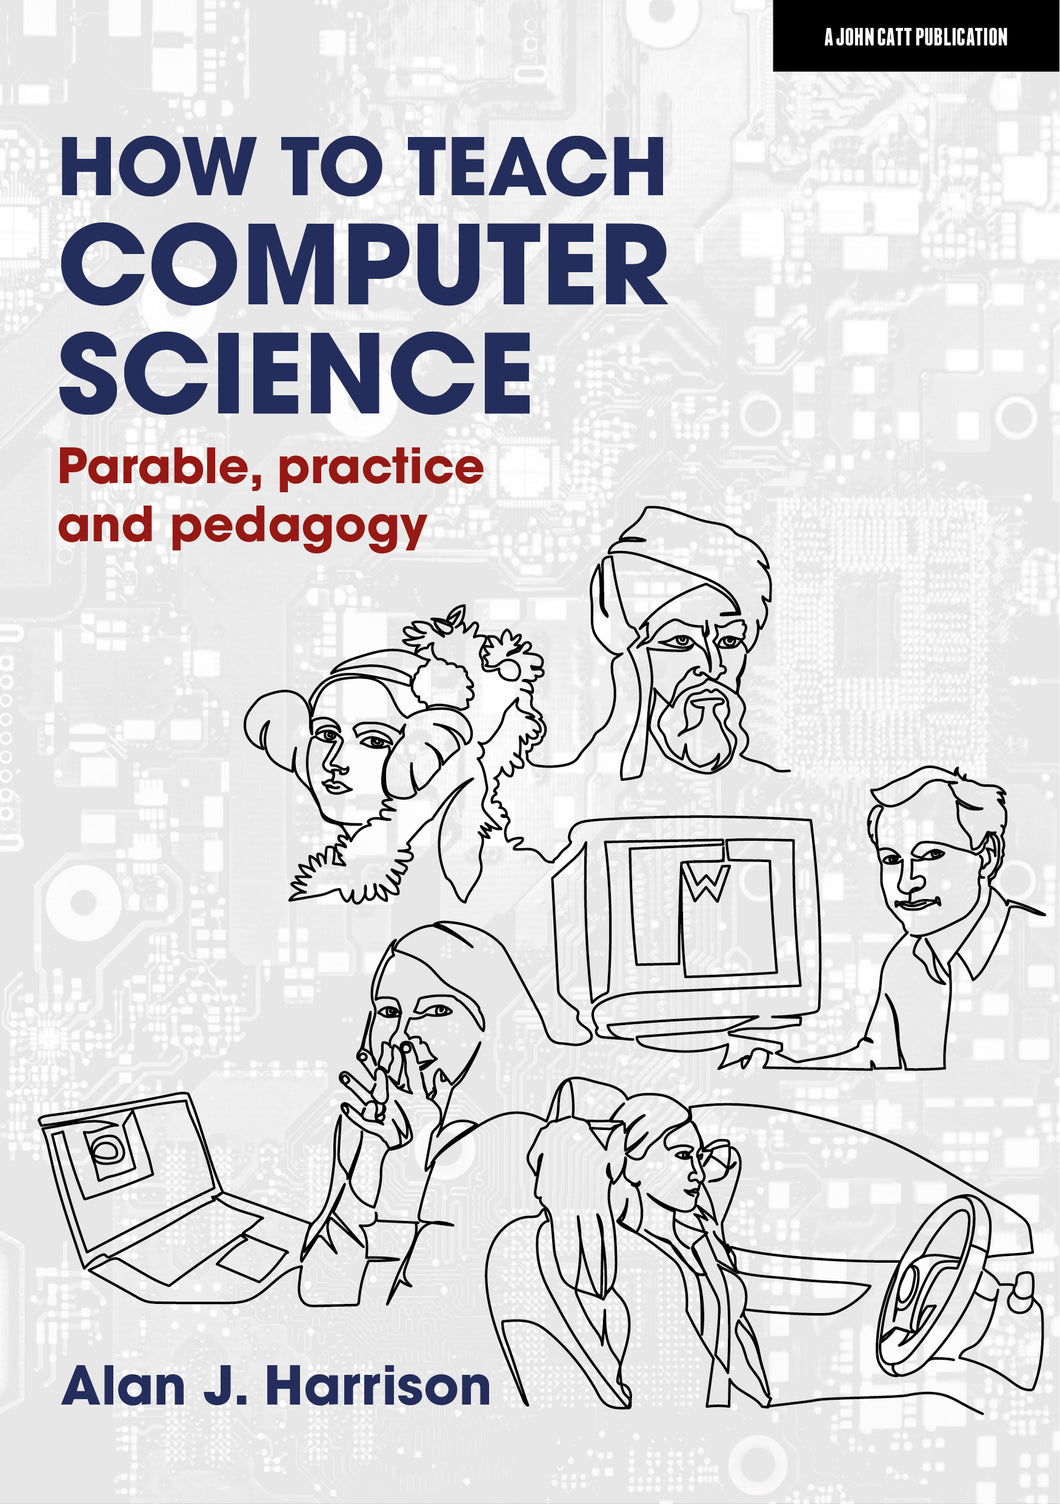 How to Teach Computer Science: Parable, practice and pedagogy